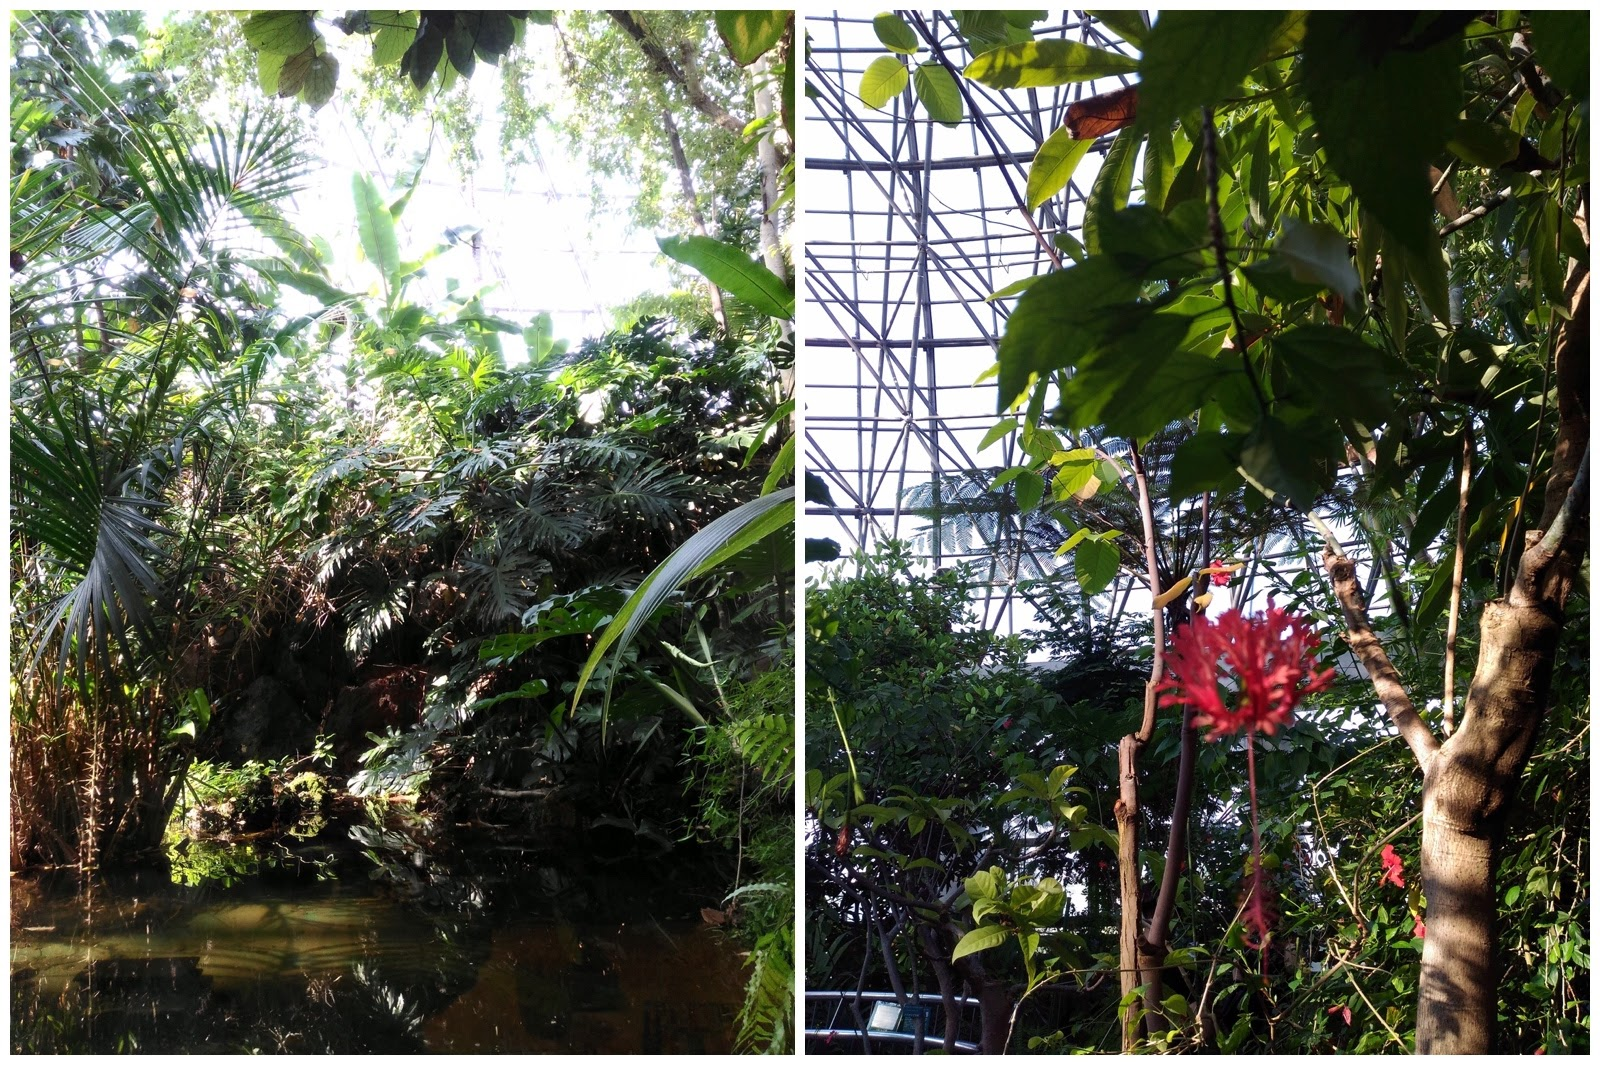 0979-201508_Yumenoshima Tropical Greenhouse Dome 06